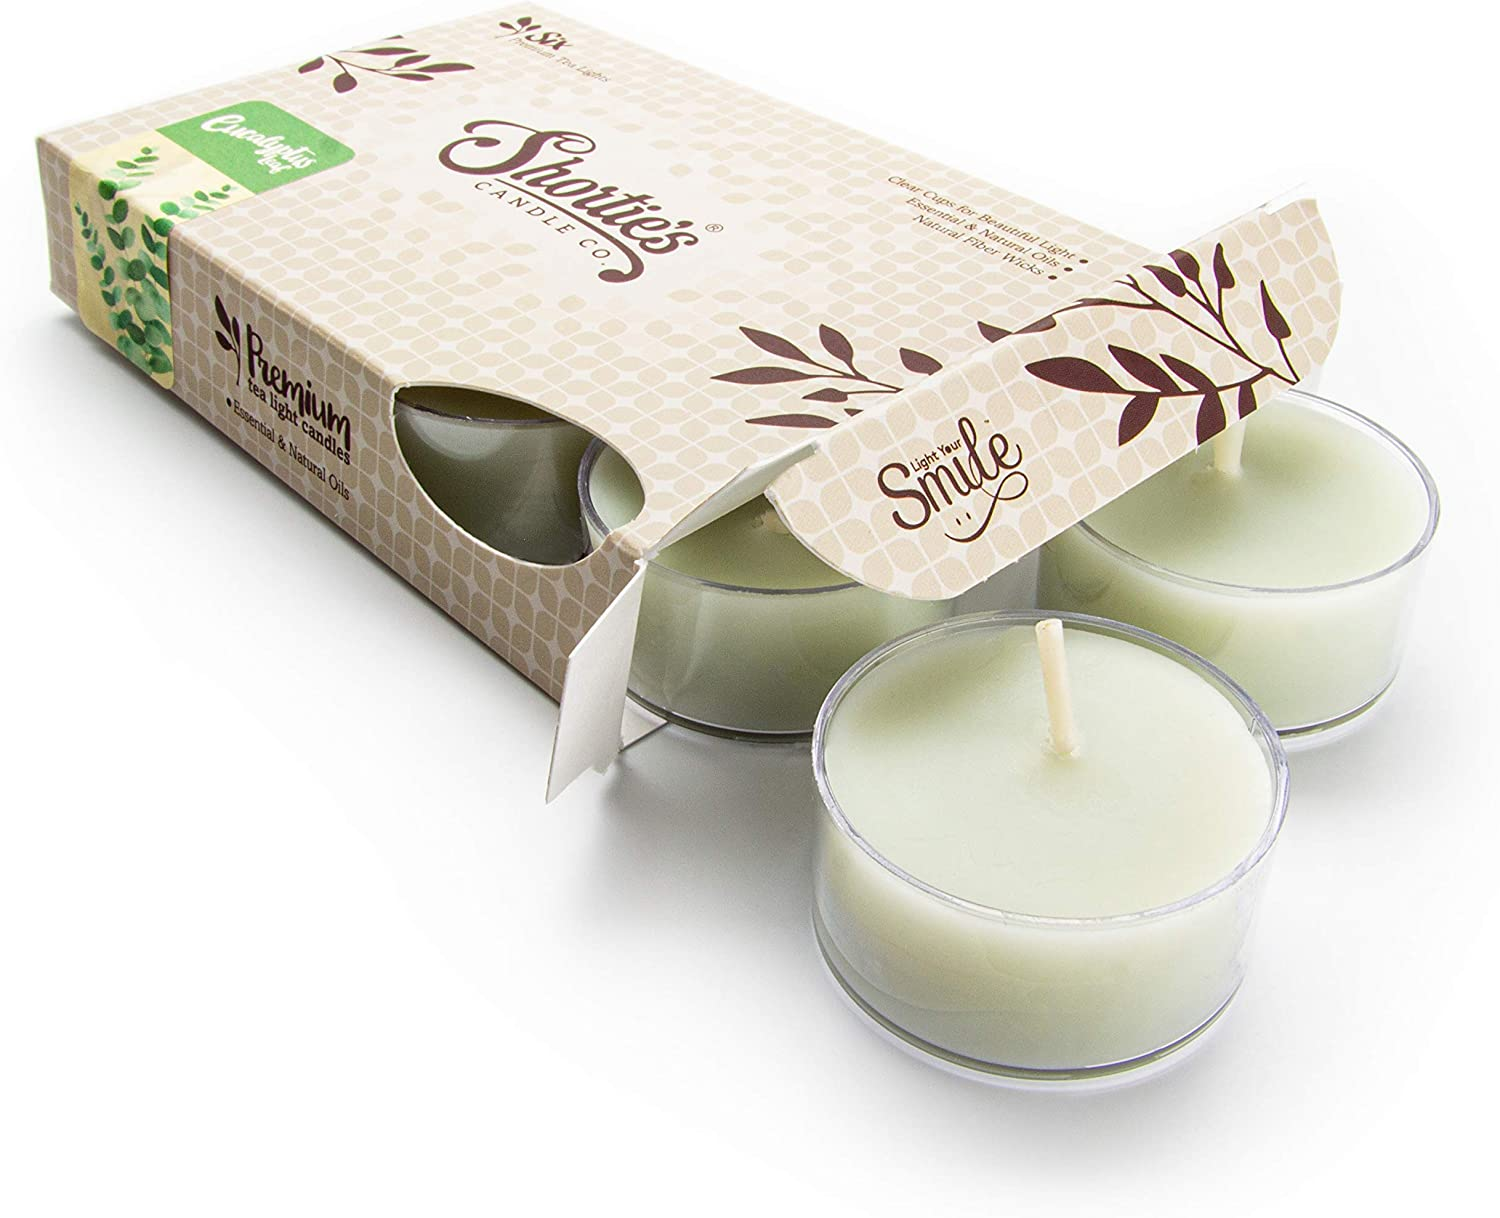 Eucalyptus Leaf Tealight Candles - Highly Scented with Essential & Natural Oils - 6 Green Hand Poured Tea Lights - Clear Container for Beautiful Candlelight - Fresh & Clean Collection